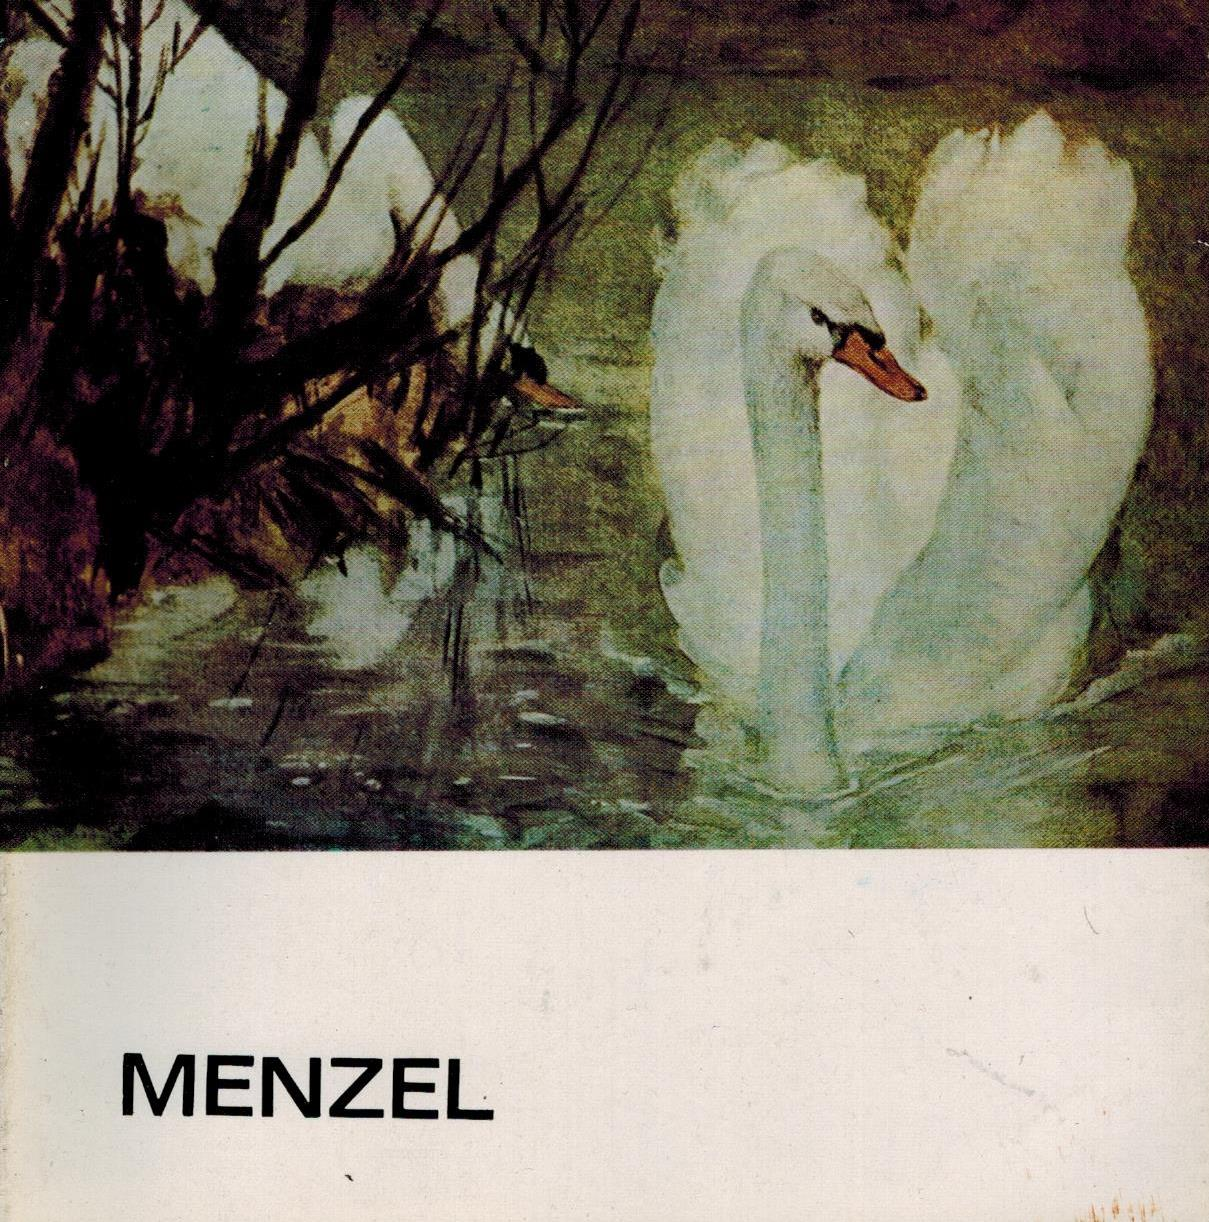 Hutt Wolfgang Menzel menzel wolfgang german literature translated from the german of wolfgang menzel